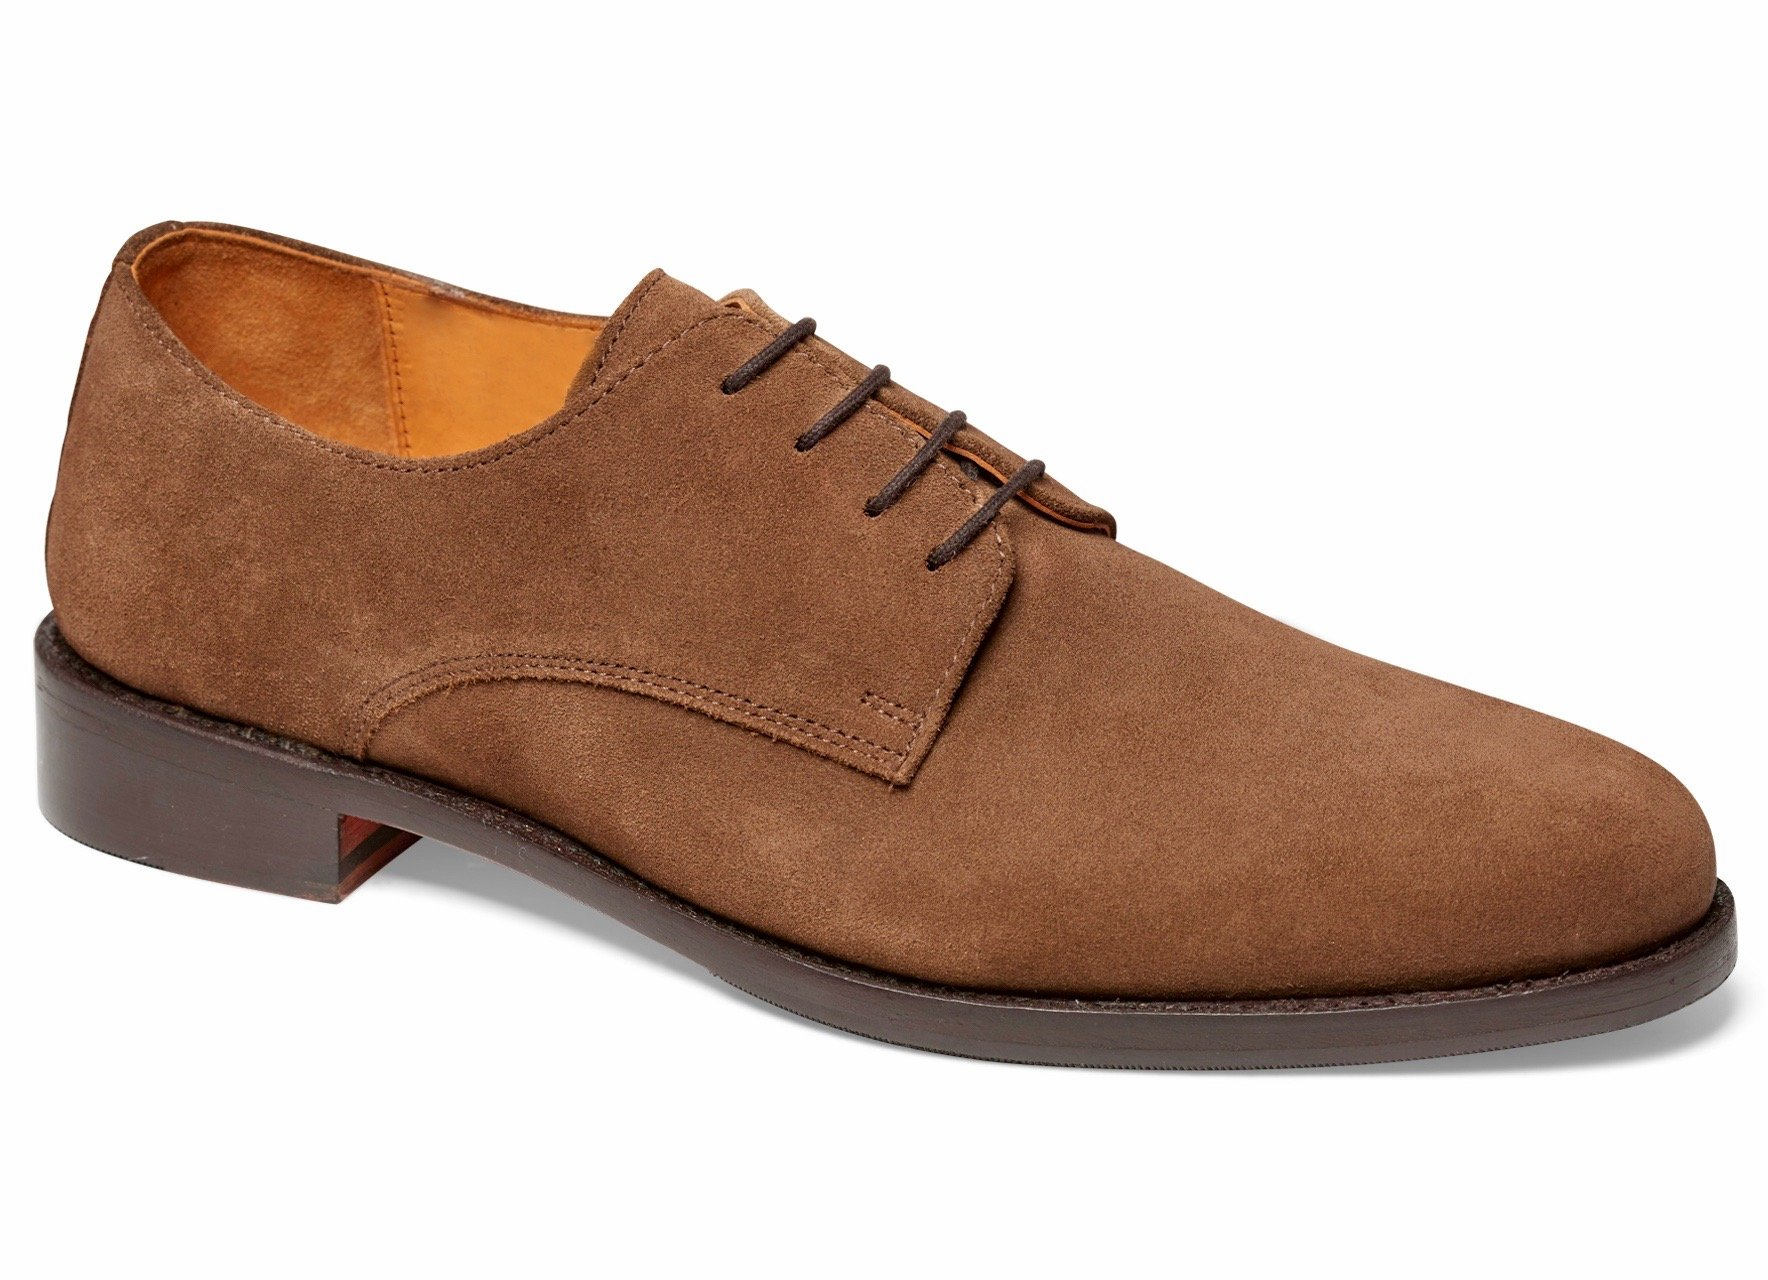 Carlos by Carlos Santana Men's Gypsy Derby Shoes In Goodyear Welted Construction (9.5 D, Honey Brown) by Carlos by Carlos Santana